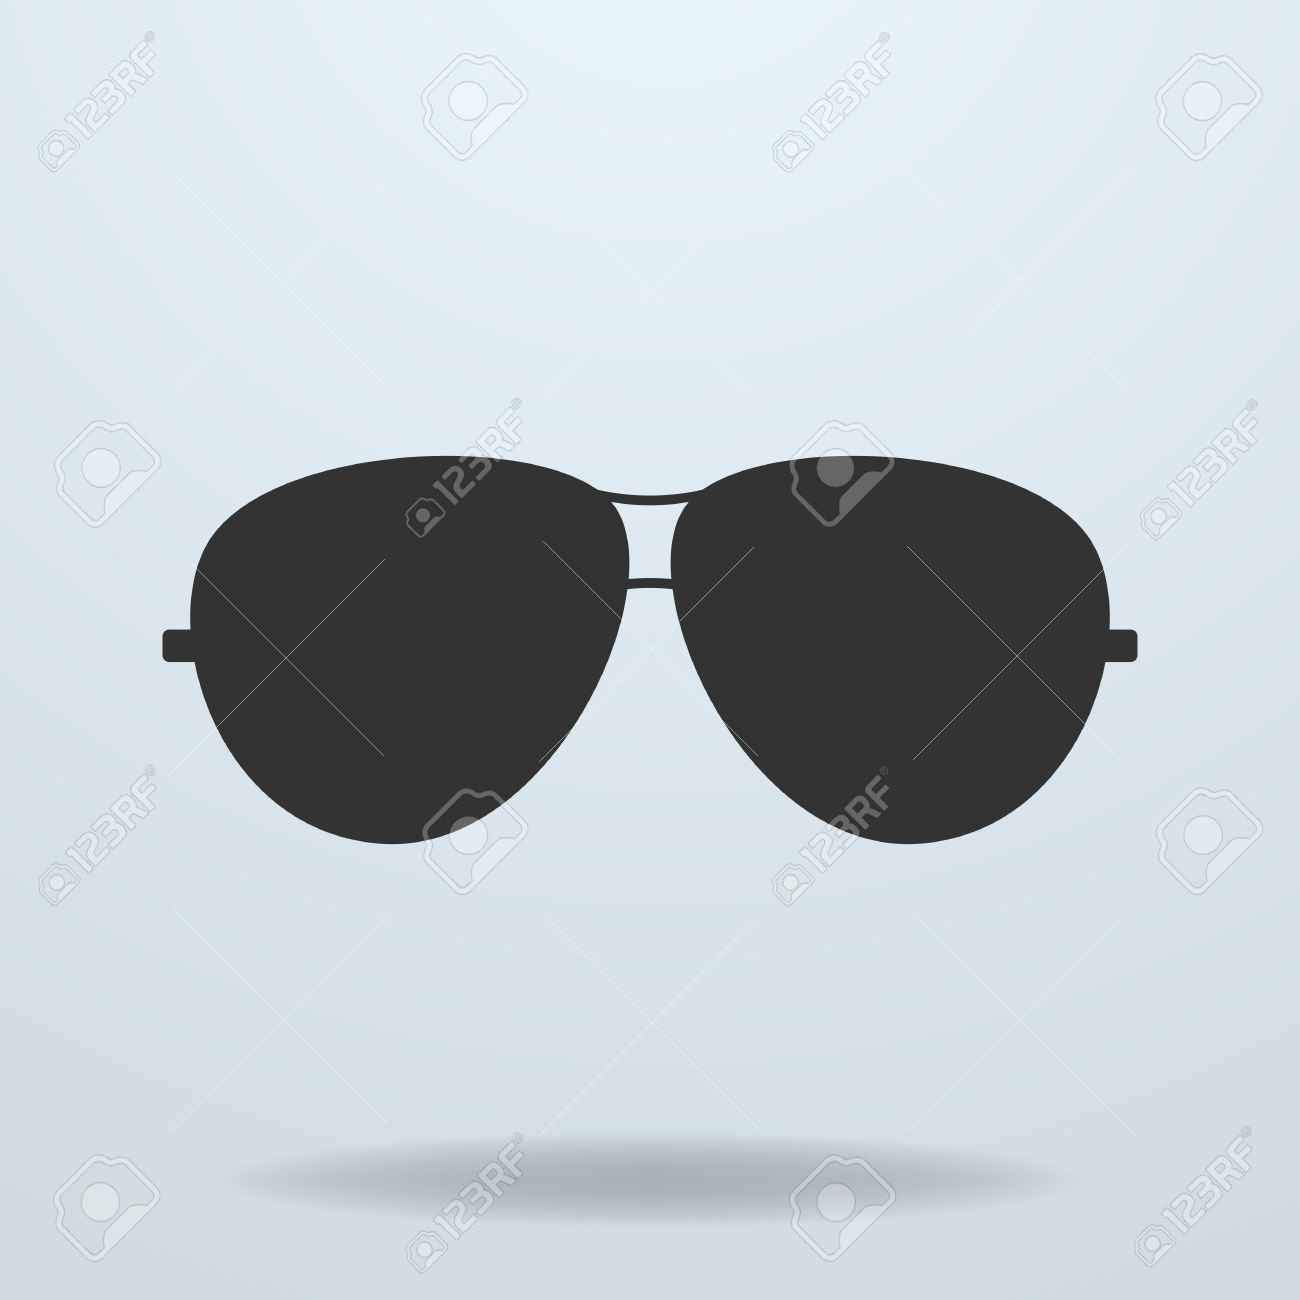 cop glasses  Police Or Cop Sunglasses, Glasses. Vector Black Icon Royalty Free ...